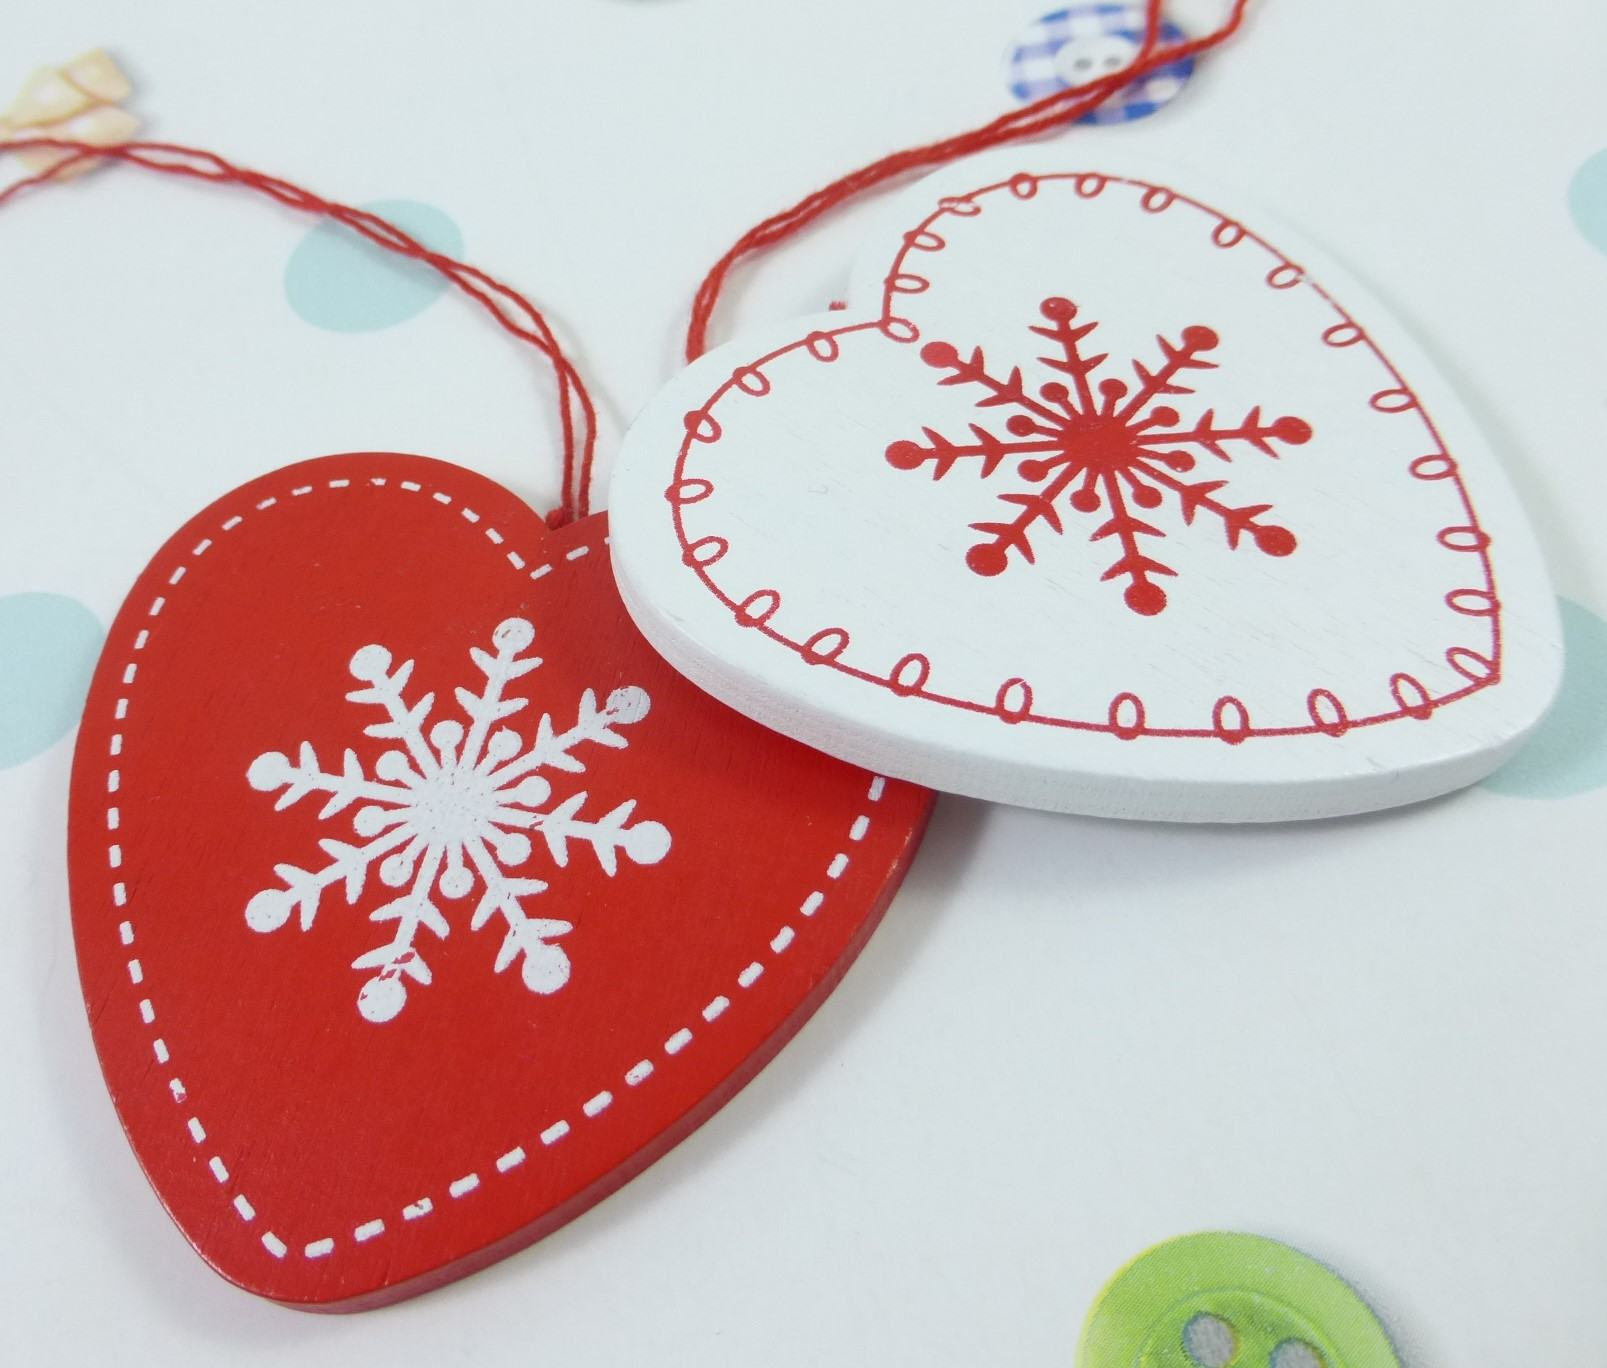 Christmas Hearts, Letterbox Friendly, Pick Me Up Gift – The Smile Parcel Mini Kind Shop 4